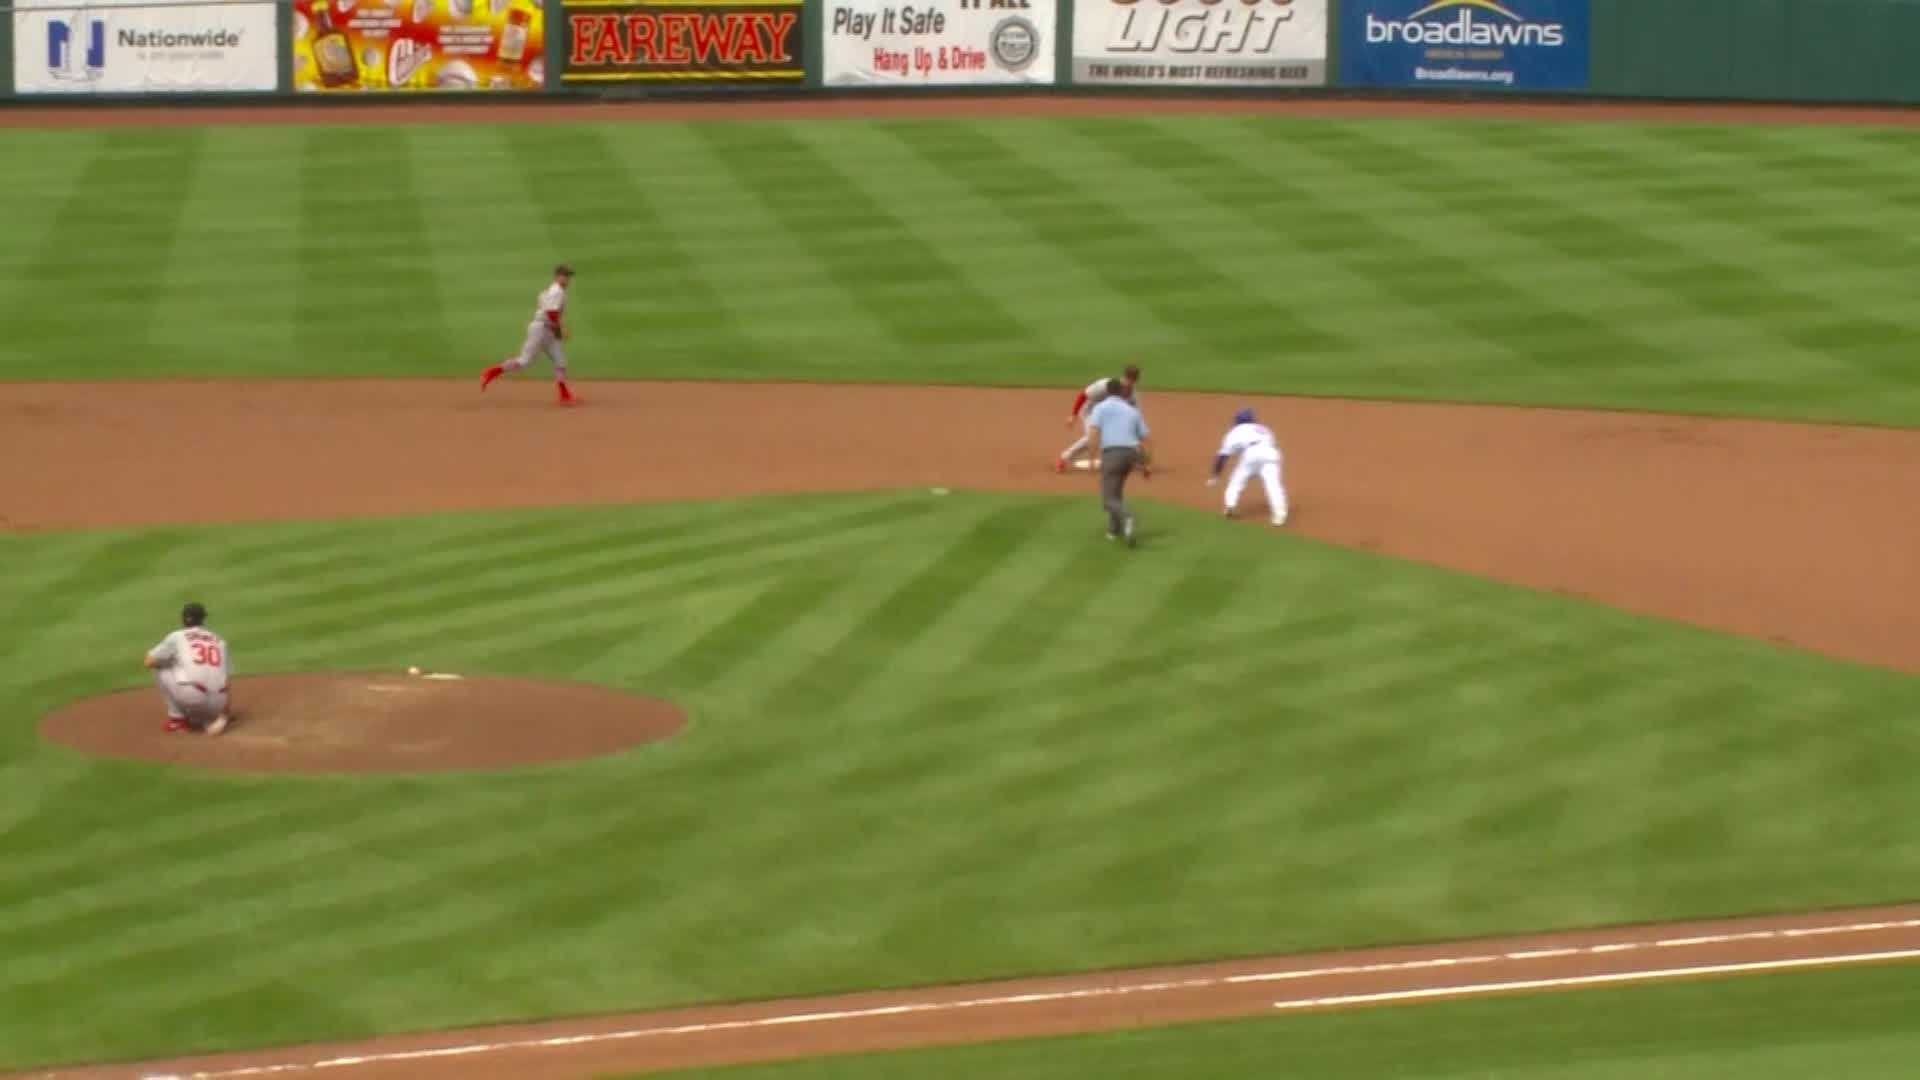 Here's the play Javy Baez wishes he could take back.